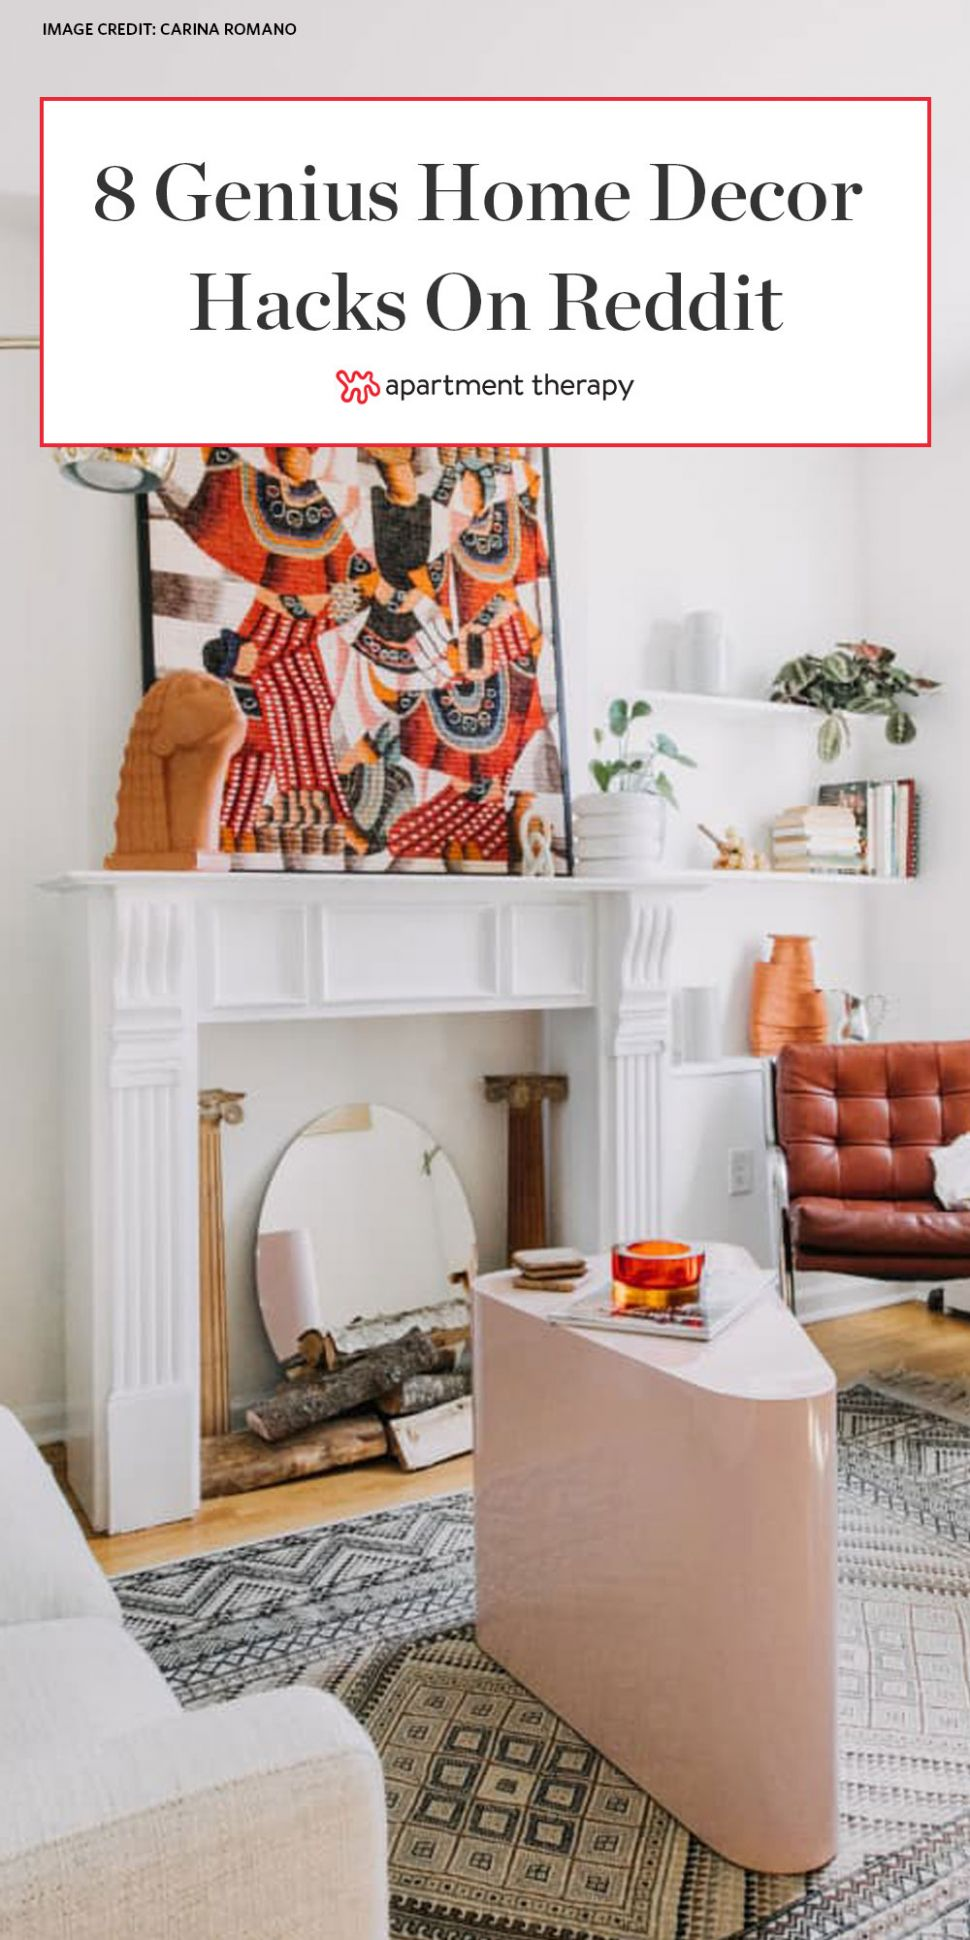 The Best Home Decor Hacks, According to Reddit | Apartment Therapy